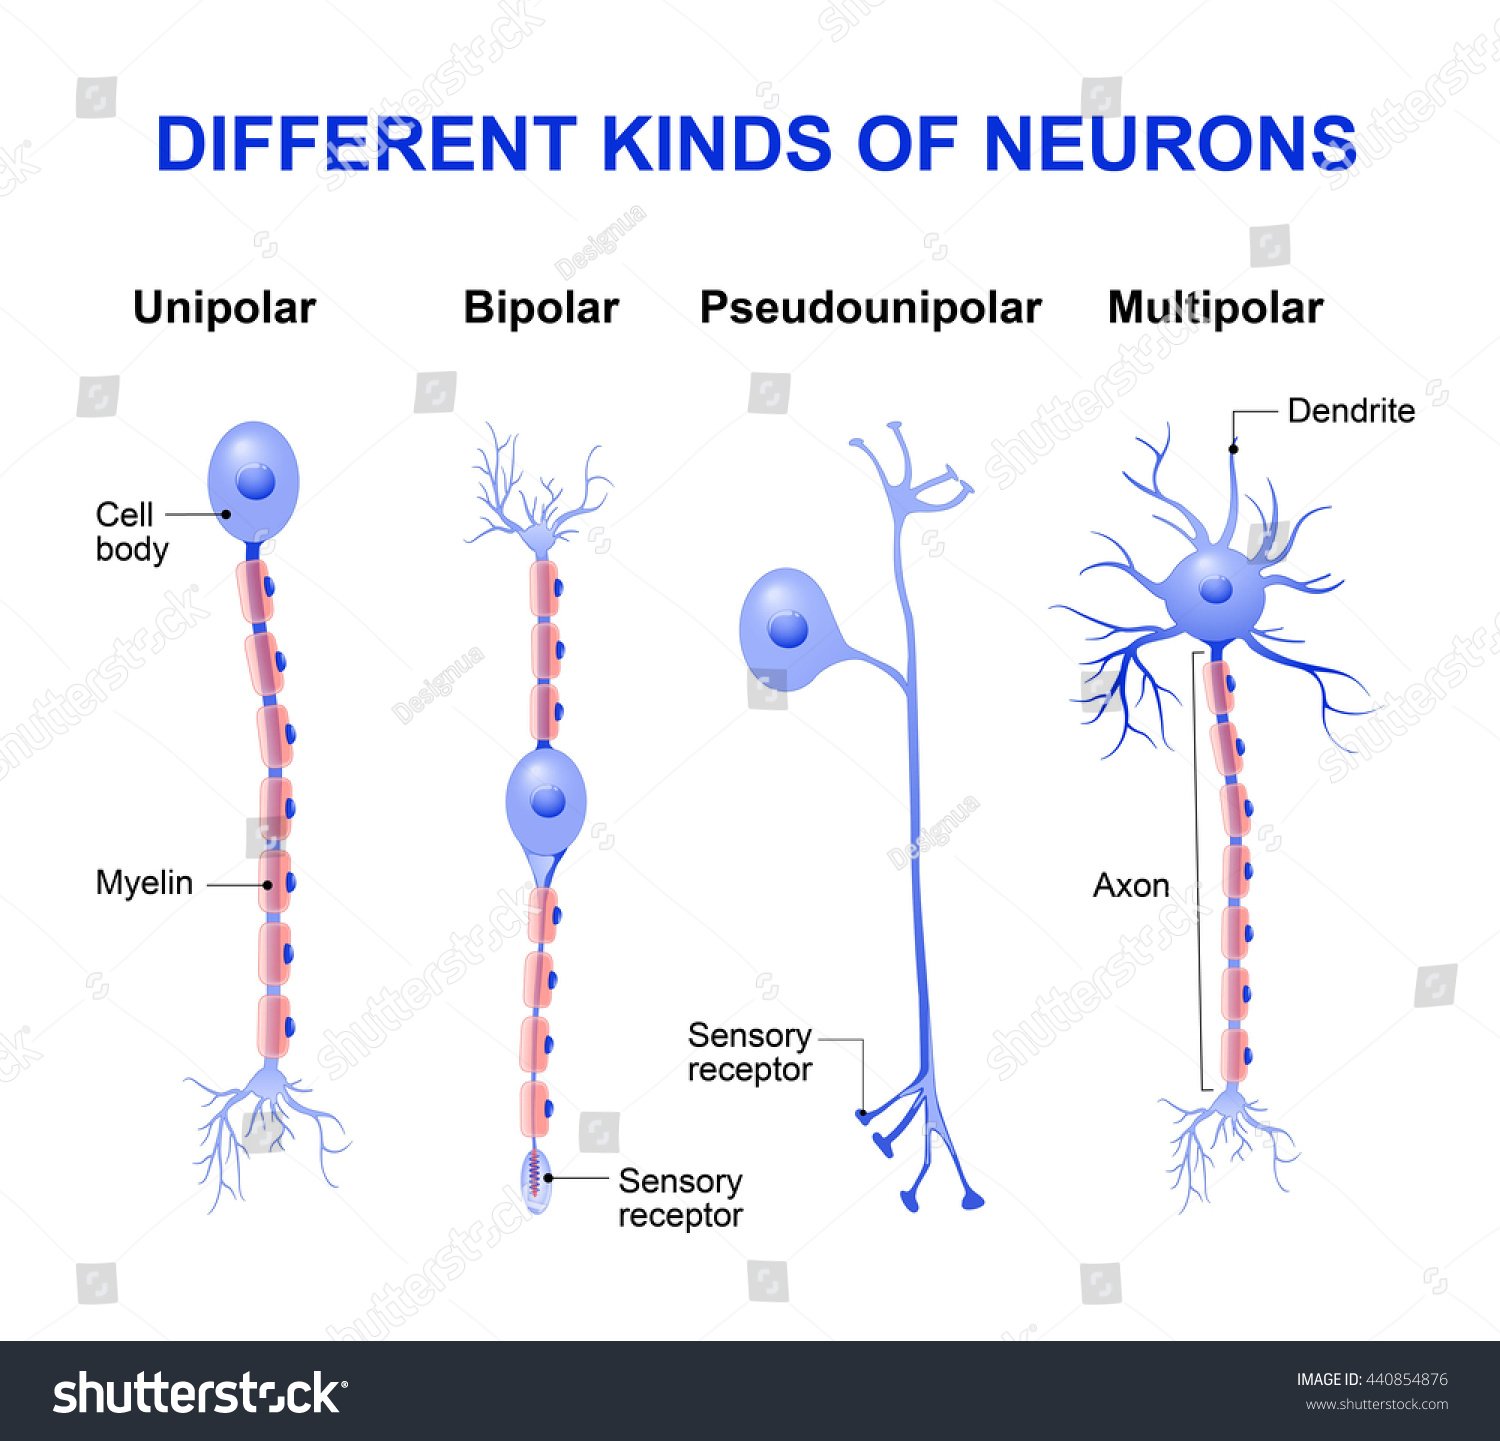 Different kinds neurons structure typical neuron em ilustrao stock different kinds of neurons structure of a typical neuron ccuart Images